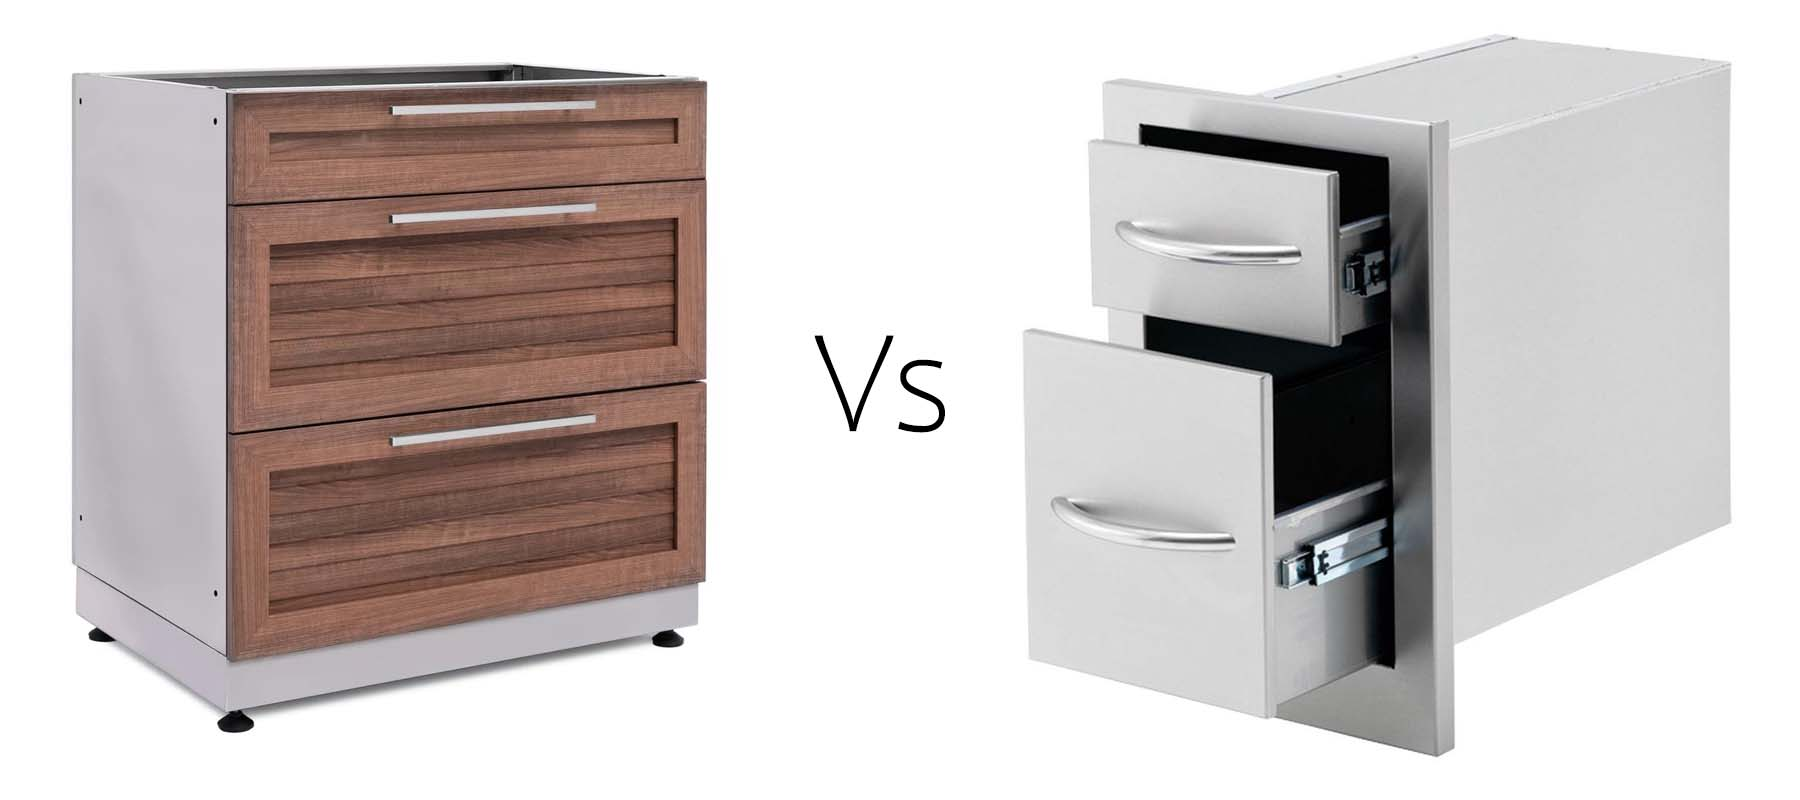 outdoor kitchen cabinet type comparison chart